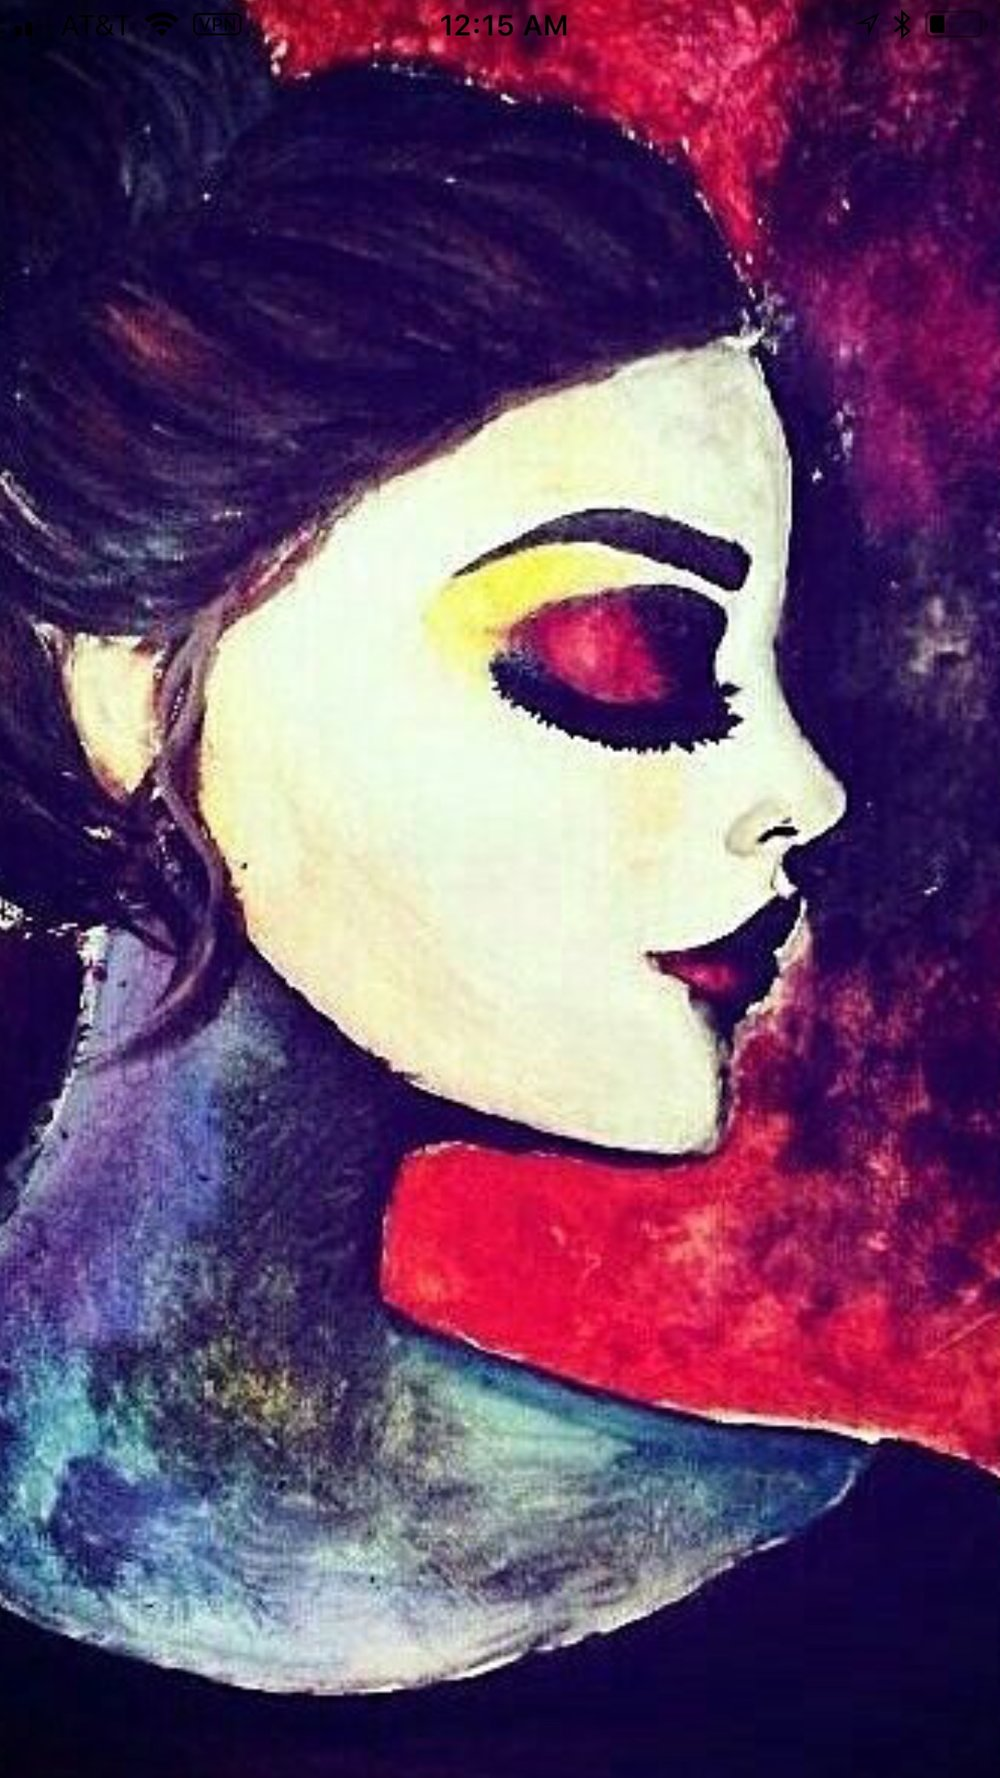 Artwork - This artist focused on color and texture to express her personality. Looking at this artwork, what would you speculate about her?